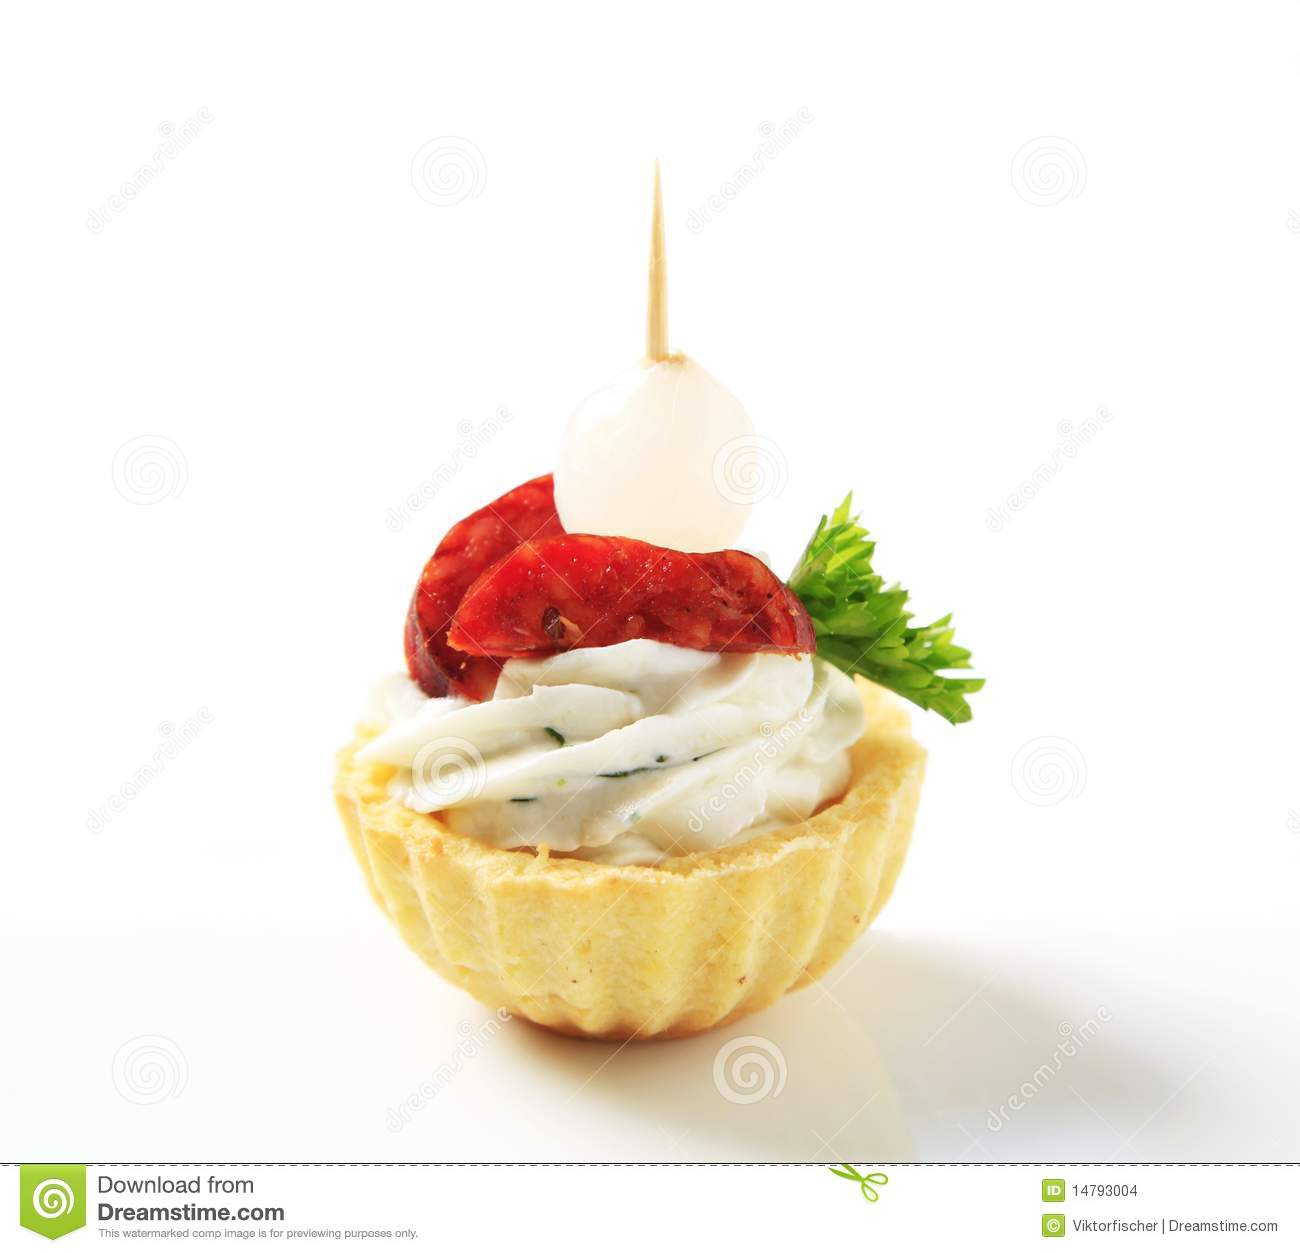 Canape stock images image 14793004 for Pastry canape fillings